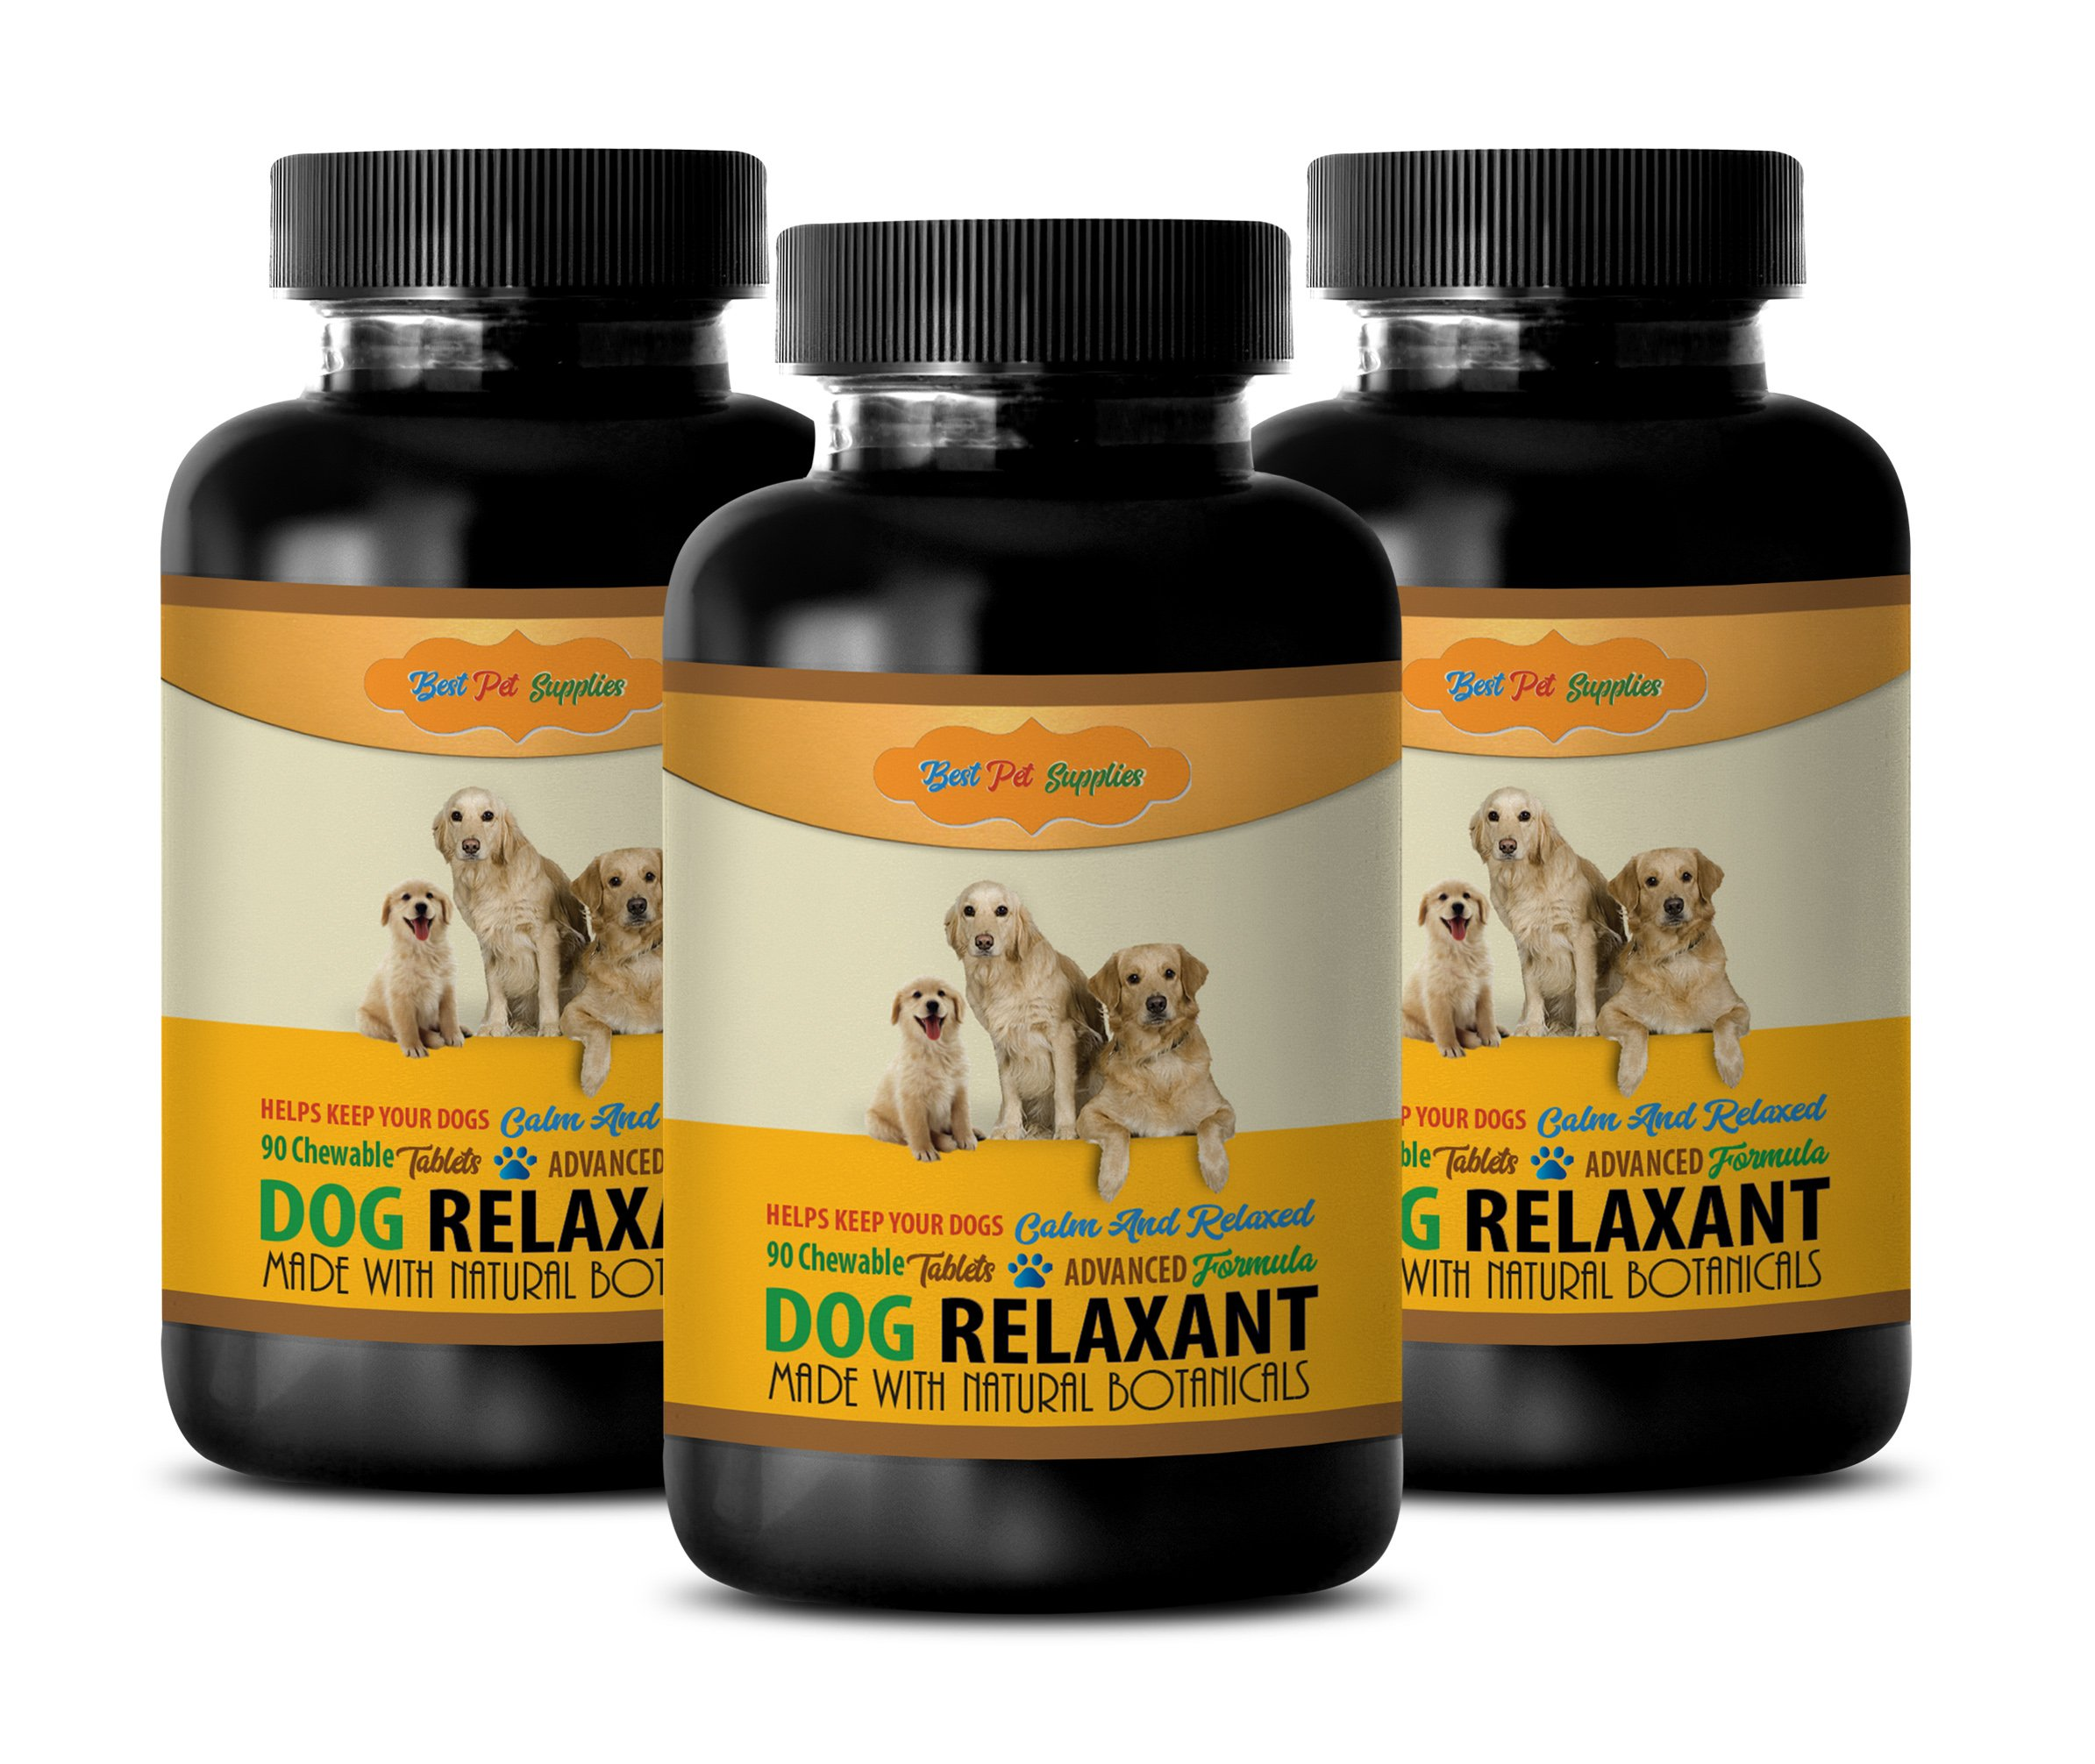 BEST PET SUPPLIES LLC puppy relaxation - DOG RELAXANT - CALM AND RELAXED FOR DOGS - NATURAL BOTANICALS - CHEWABLE - dog calming pills - 270 Chews (3 Bottle) by BEST PET SUPPLIES LLC